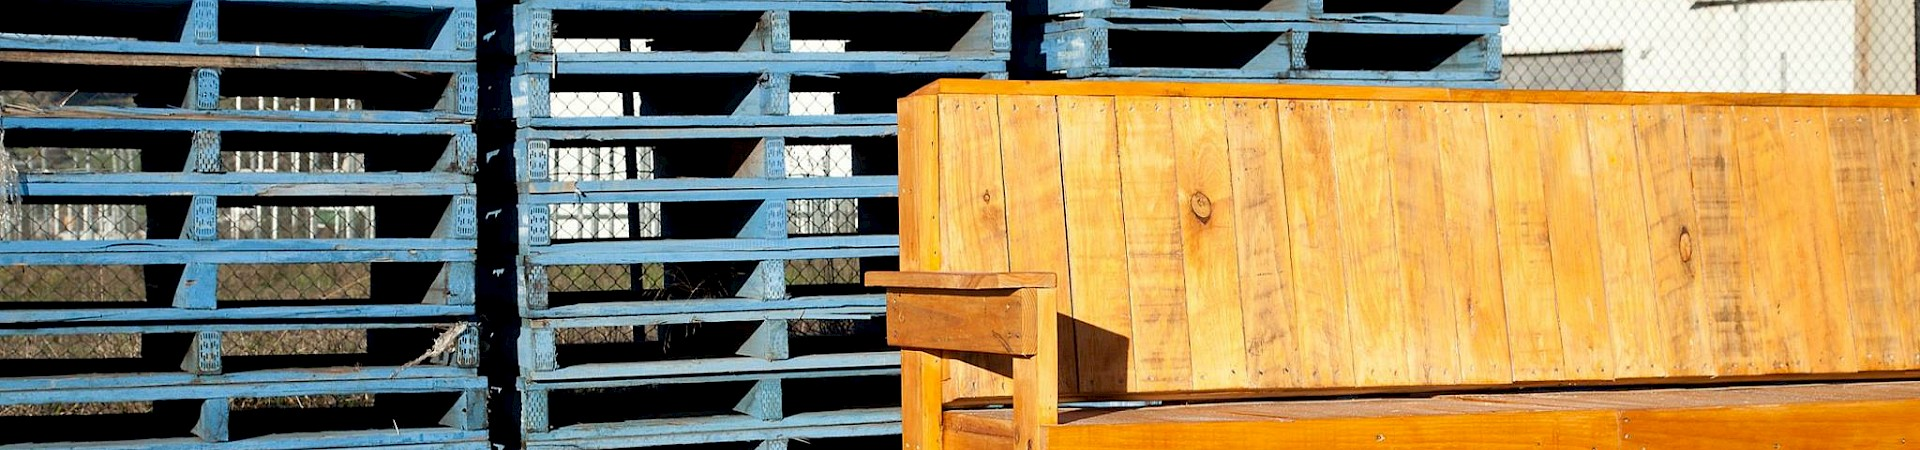 Pallet Furniture image